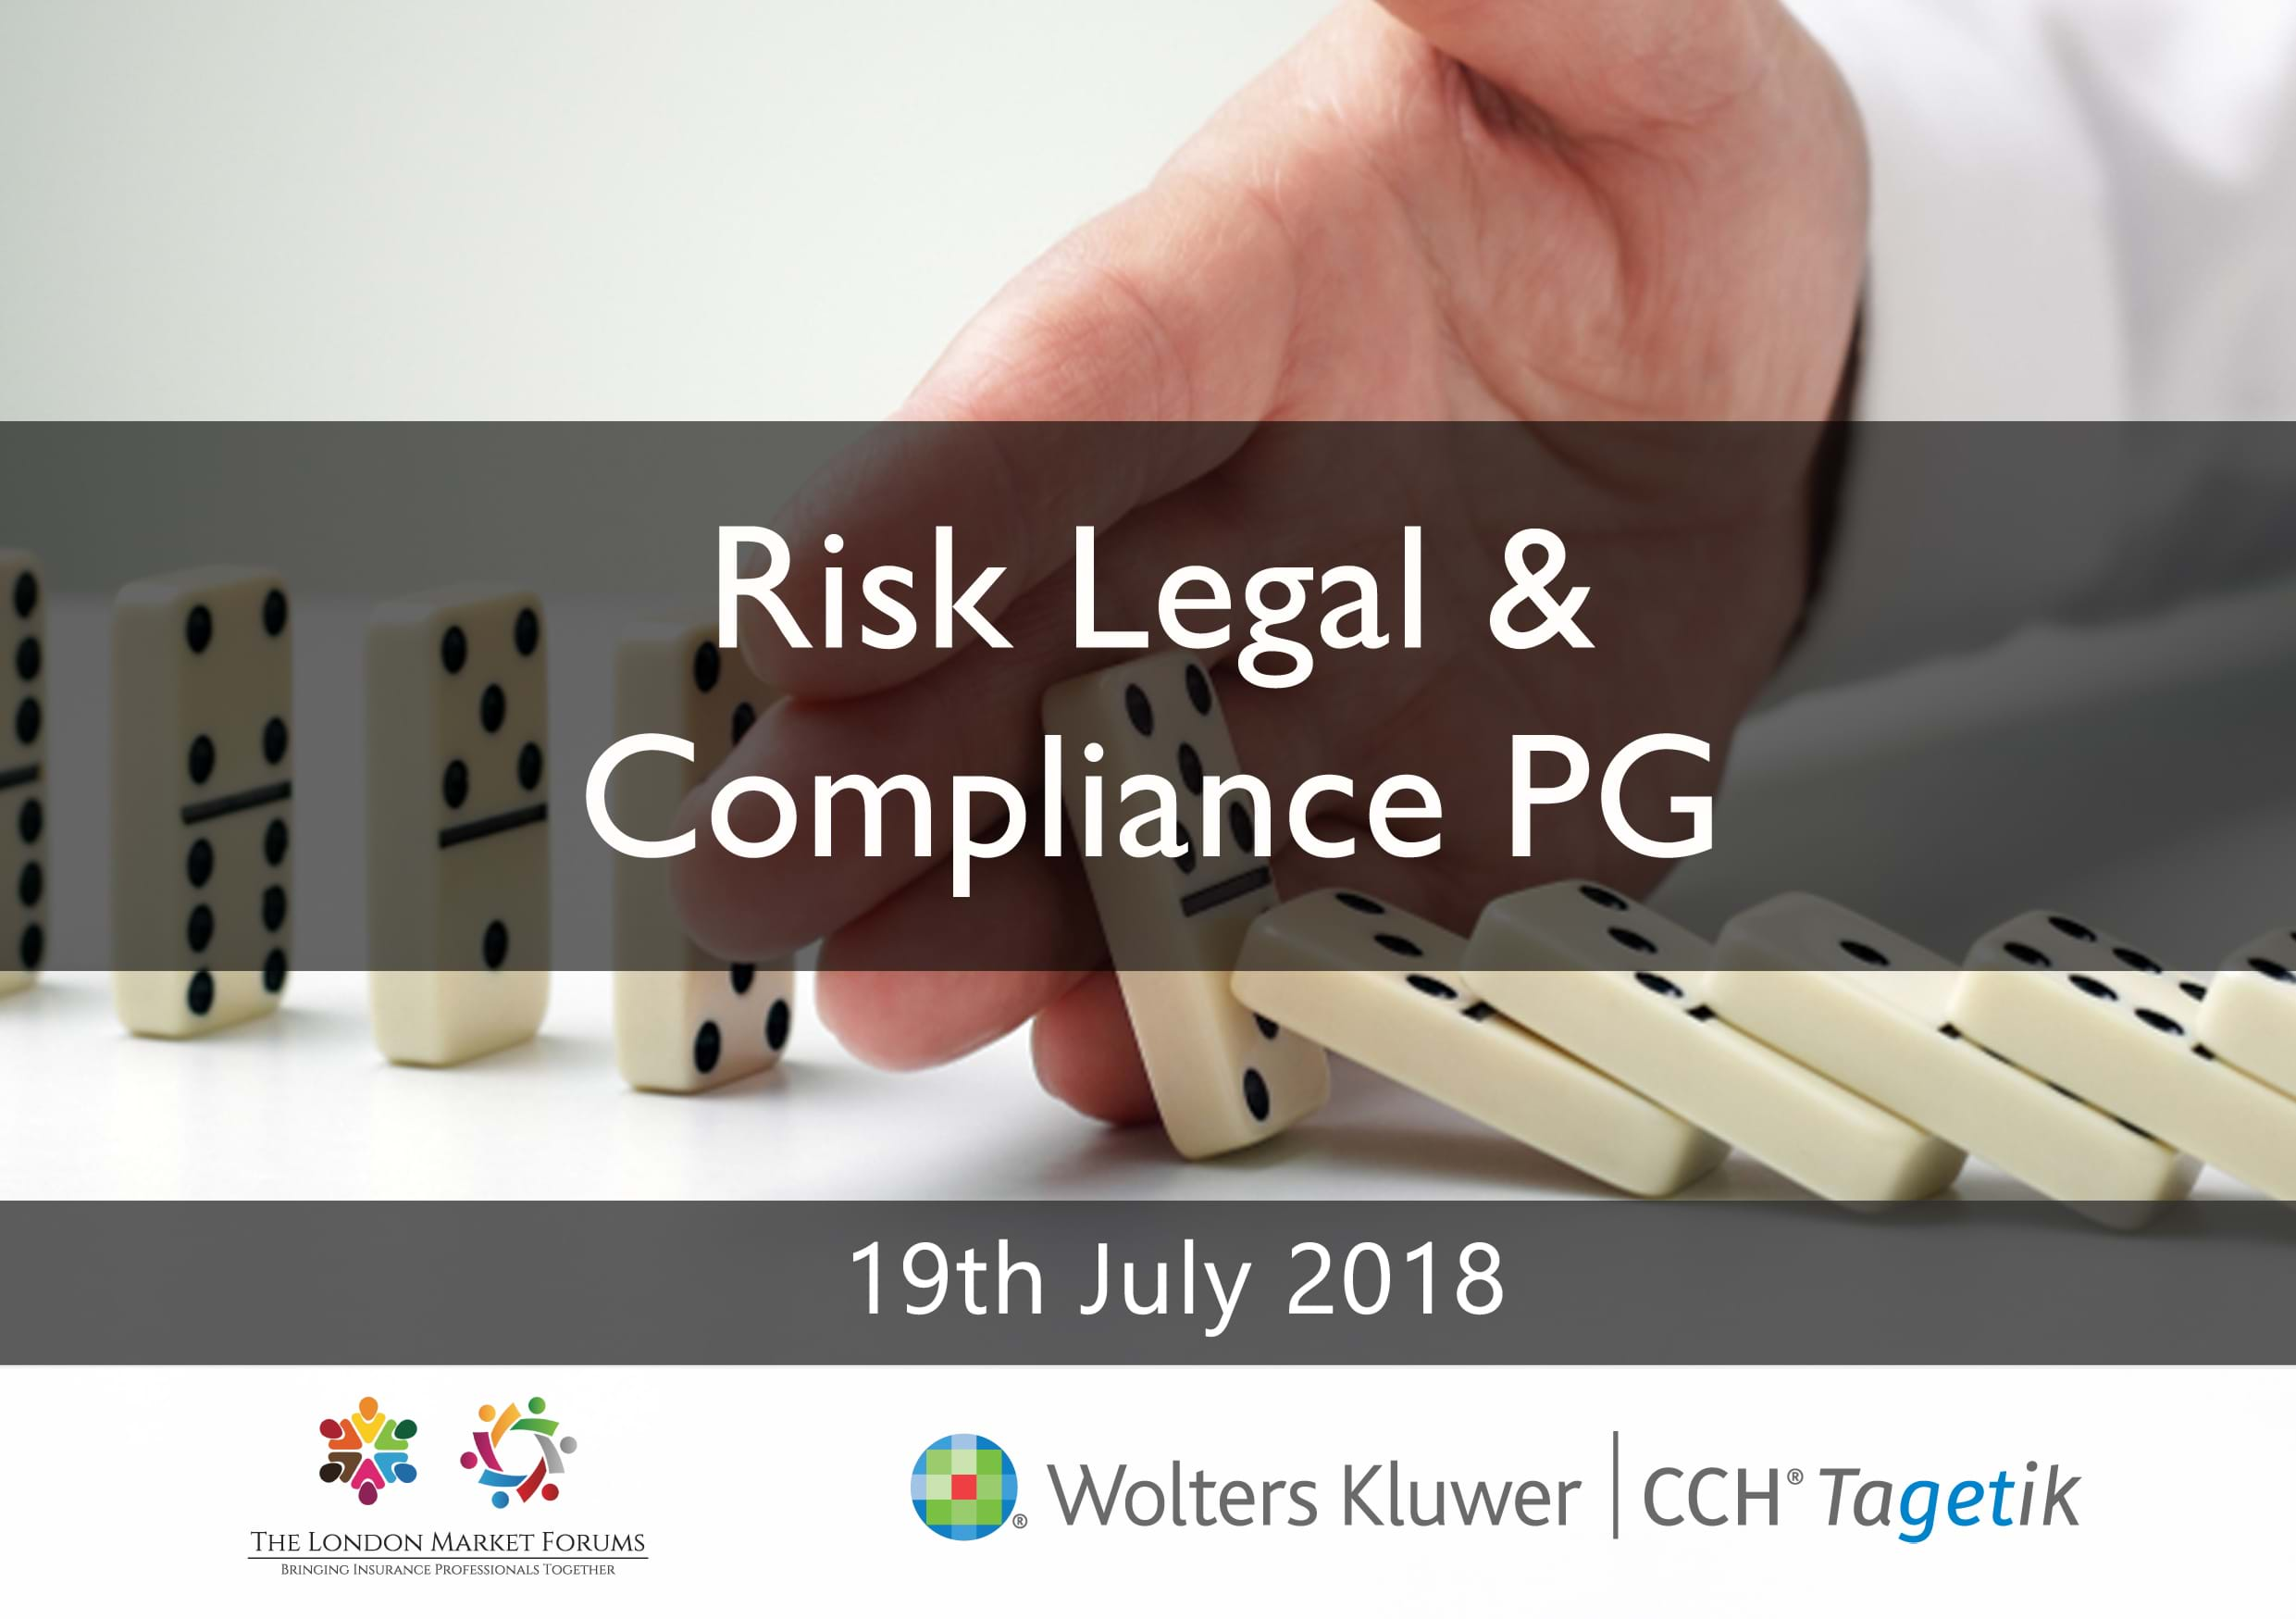 Risk Legal & Compliance PG - 19th July 2018